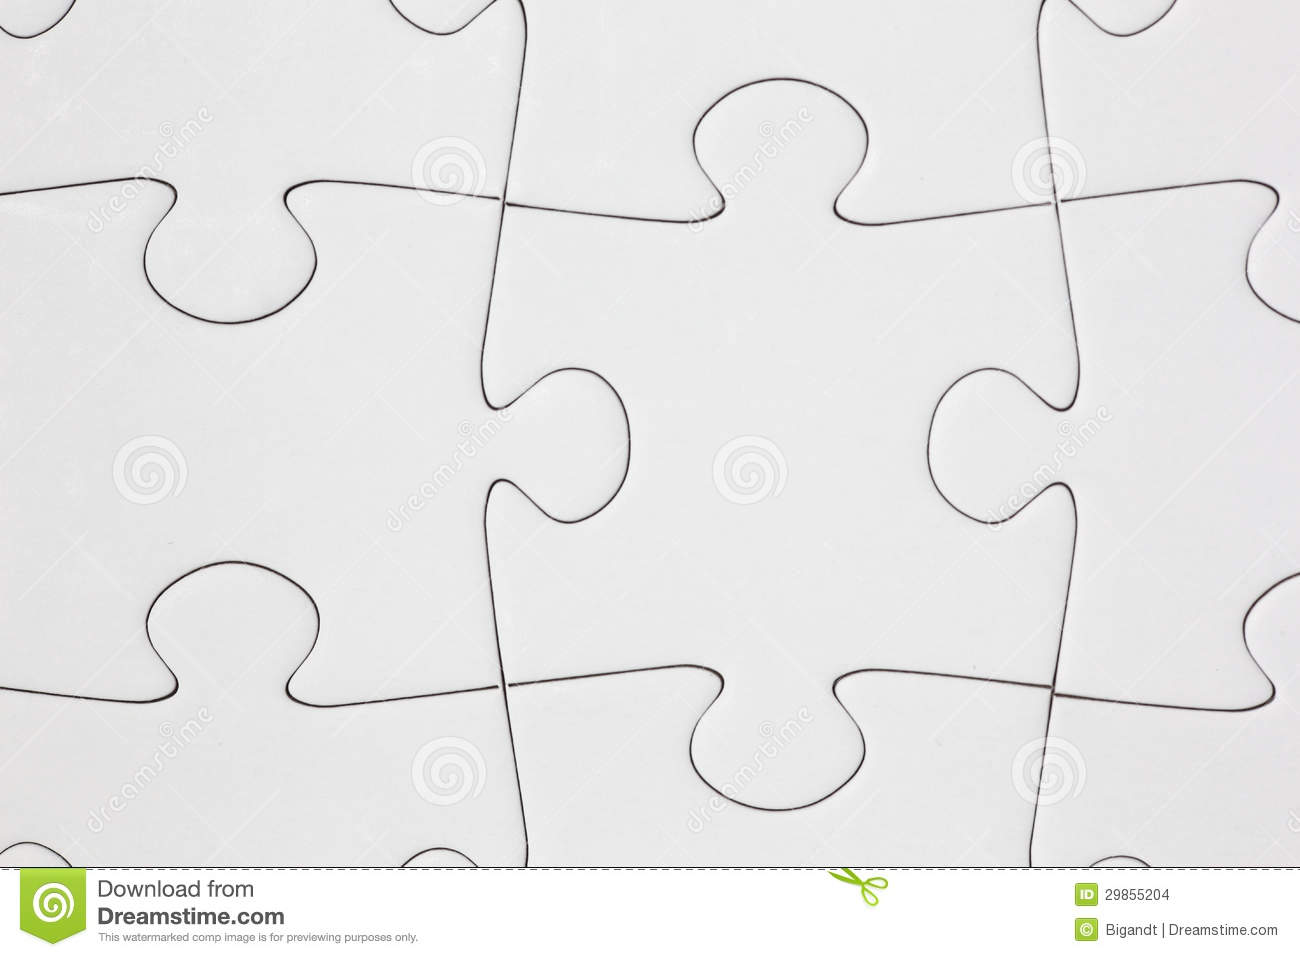 Close Up Of Assembled Jigsaw Puzzle With Blank White Pieces